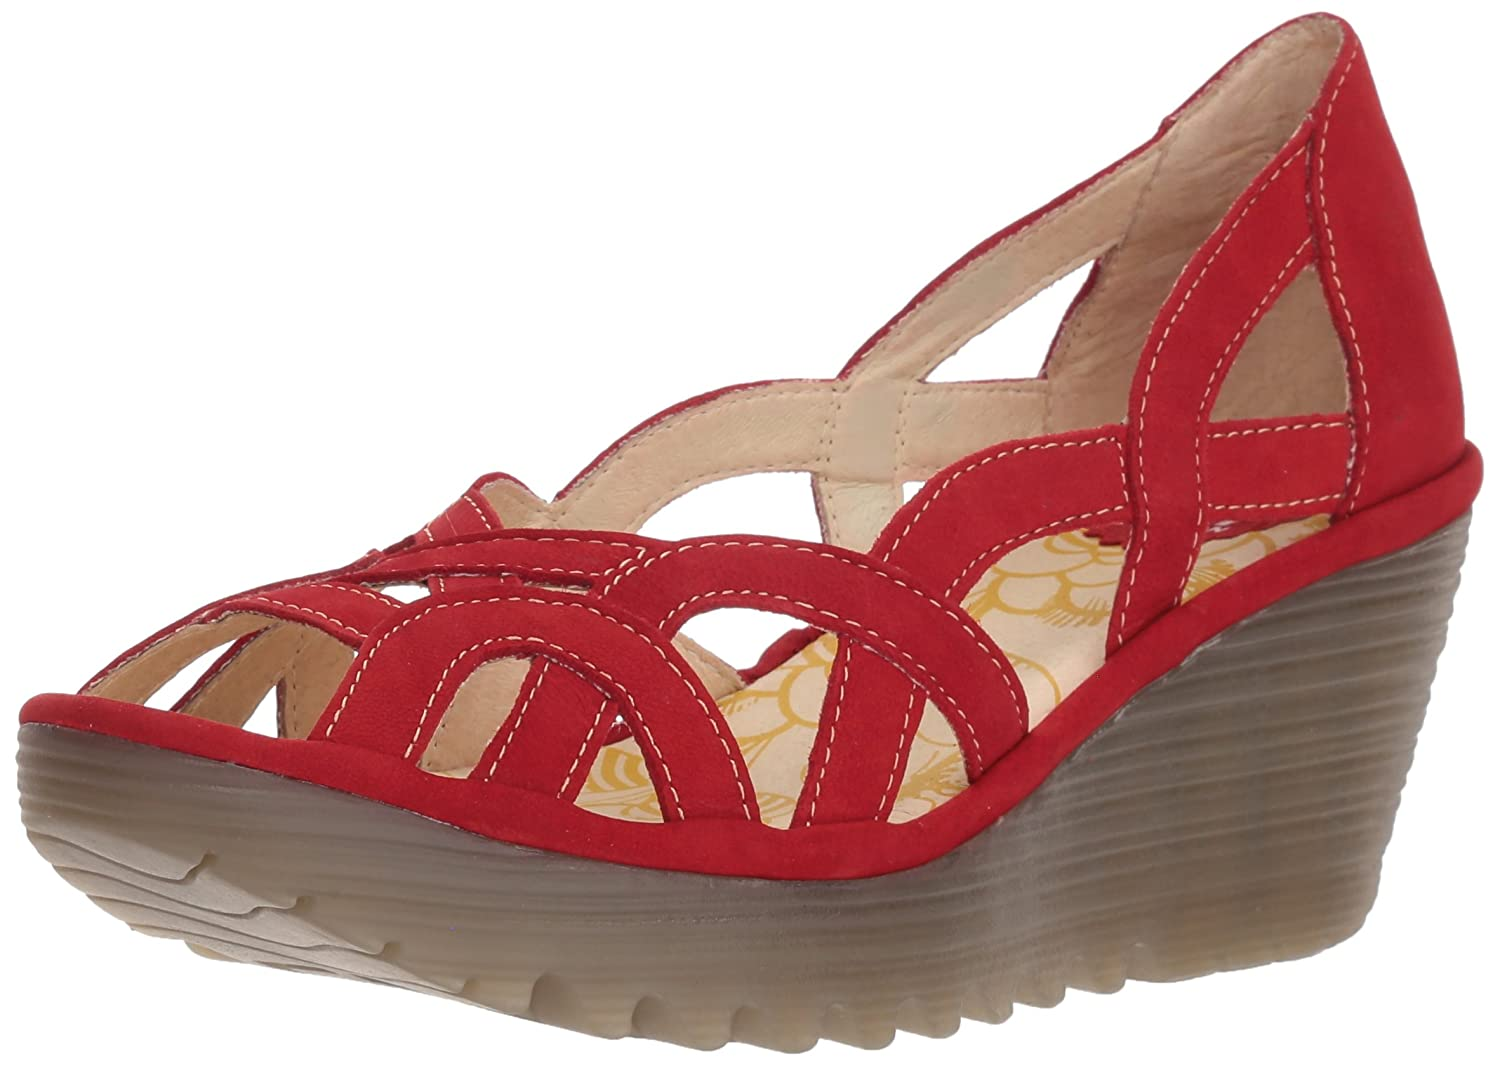 FLY London Women's Yadi718fly Platform Pump B0752LY4HY 38 M EU (7-7.5 US)|Lipstick Red Cupido/Mousse